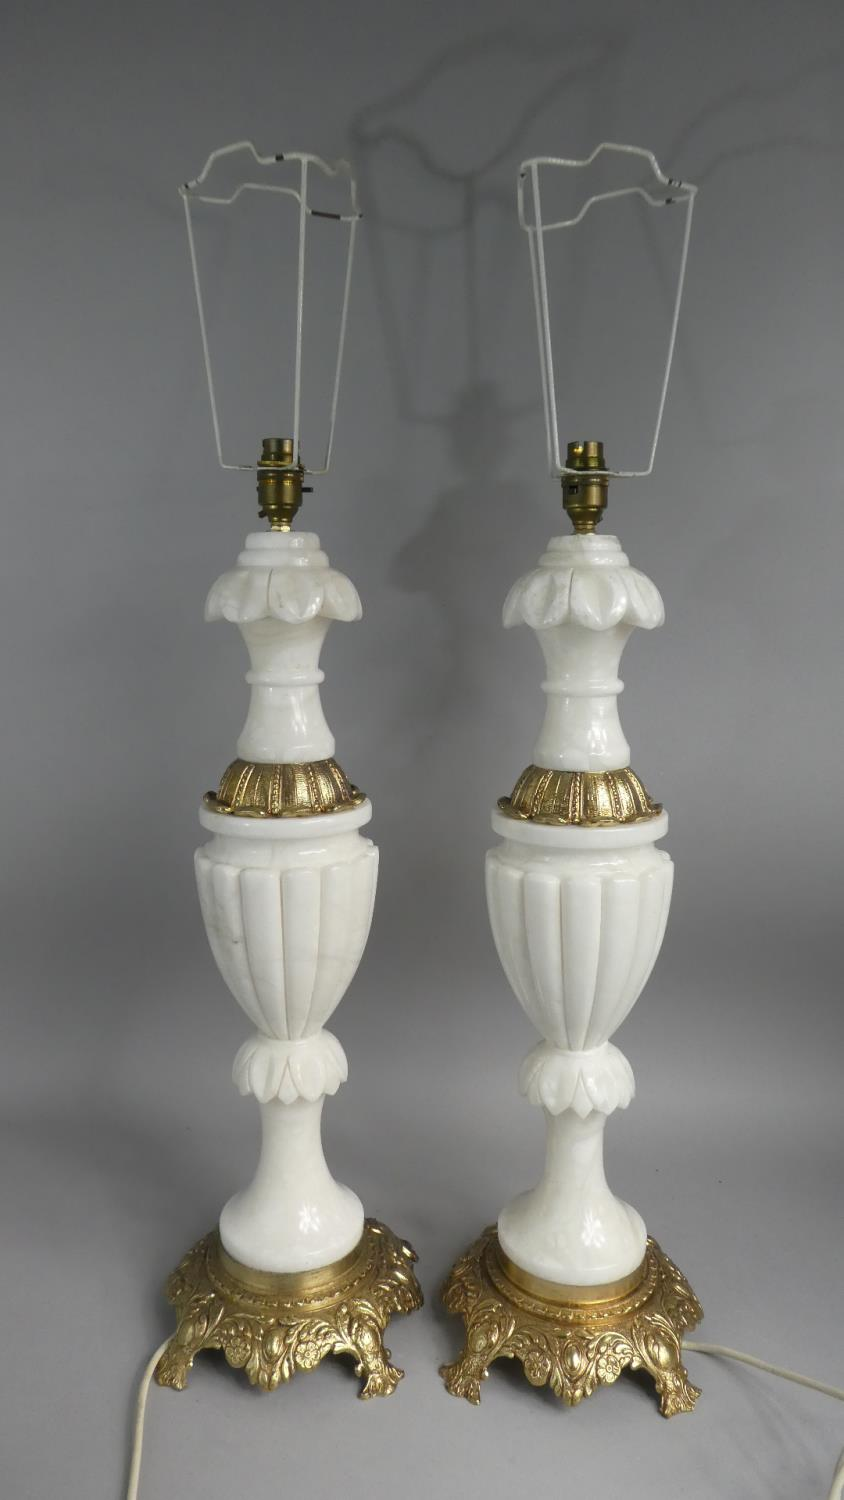 Lot 76 - A Large Modern Pair of Gilt Brass and Alabaster Table Lamps of Vase Form, 65cm High